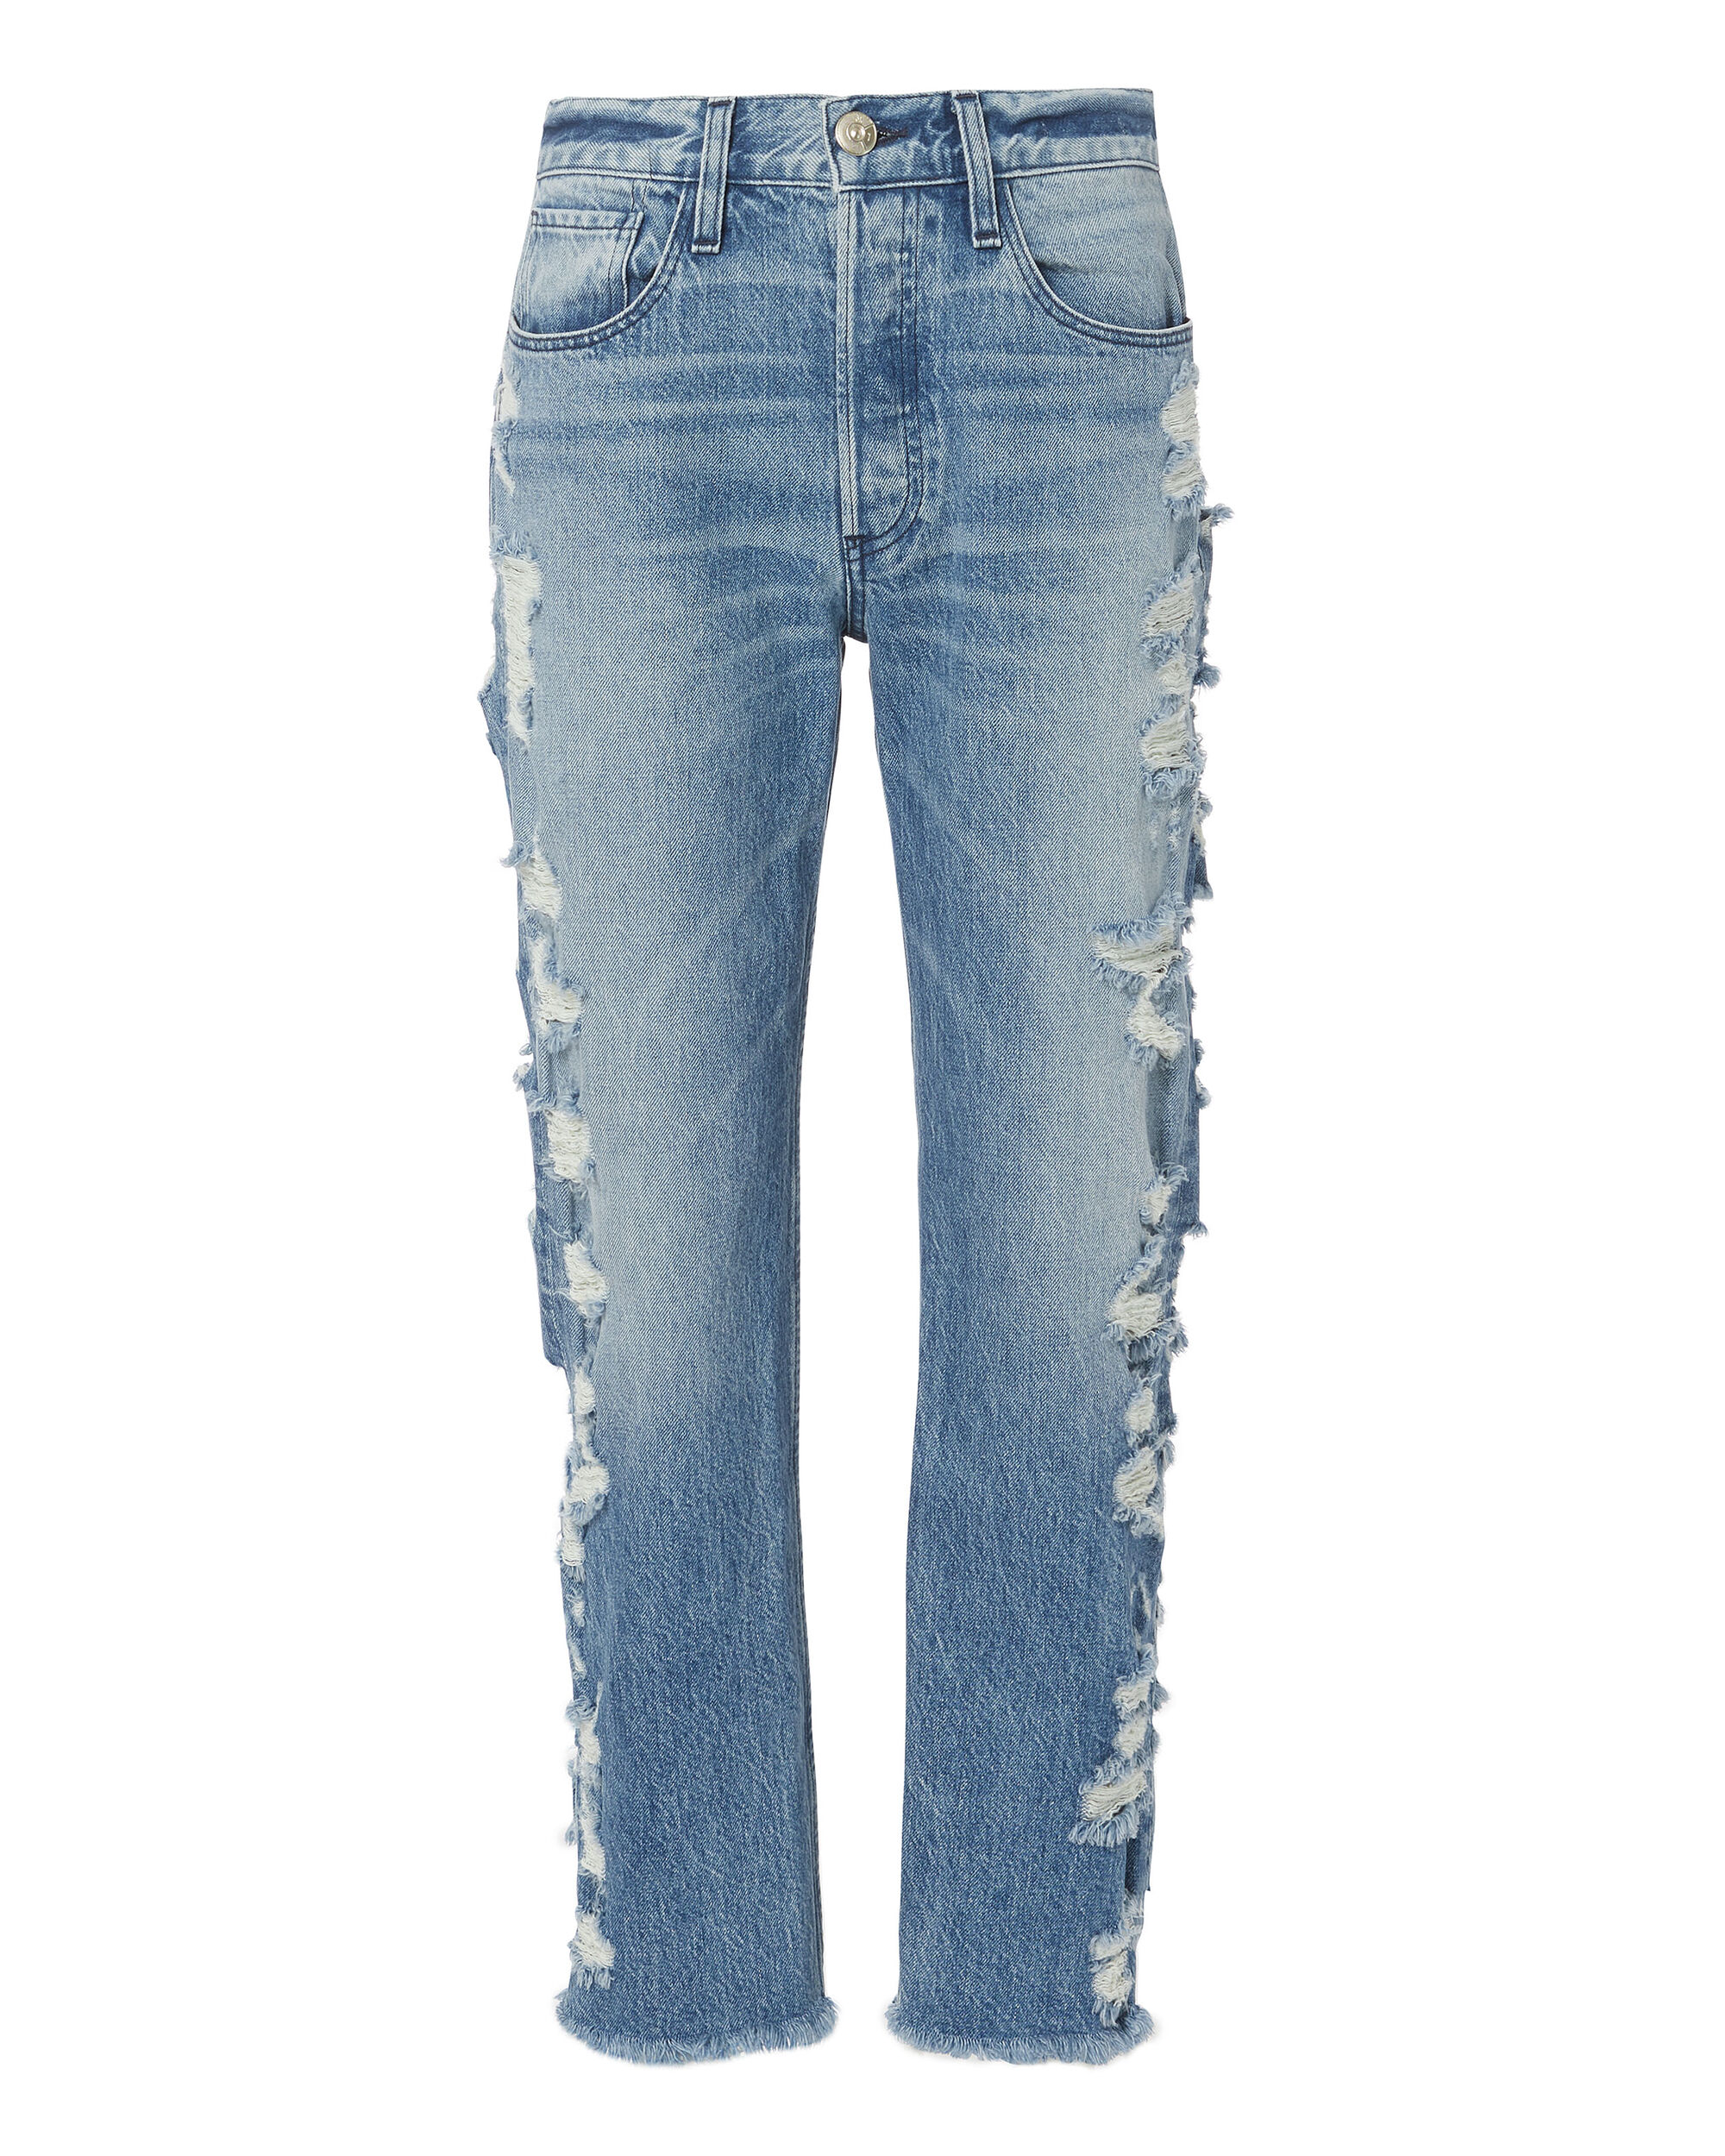 W3 Higher Ground Dosa Cropped Jeans, DENIM, hi-res